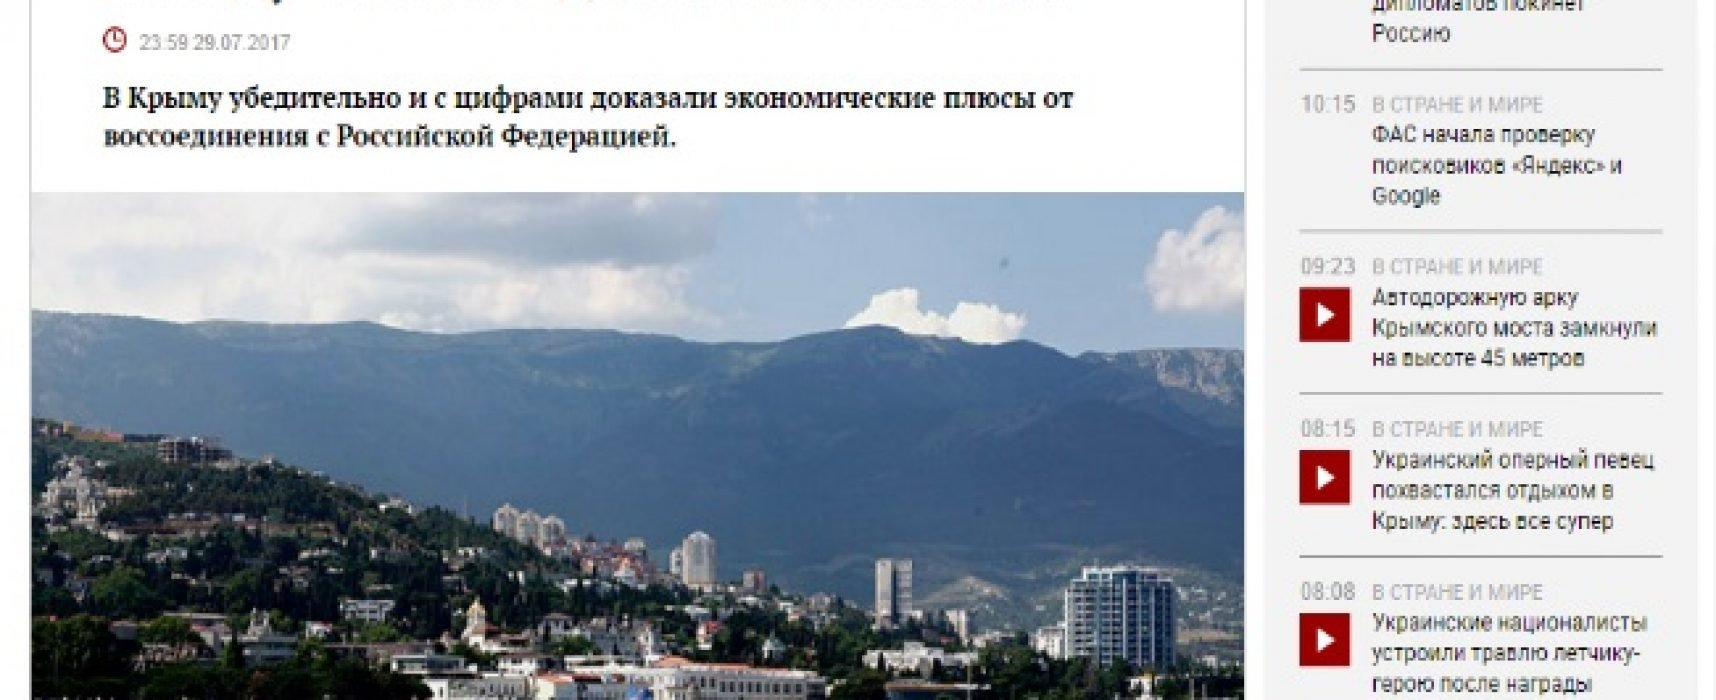 Fake: Crimea Benefits Economically from Reunification with Russia